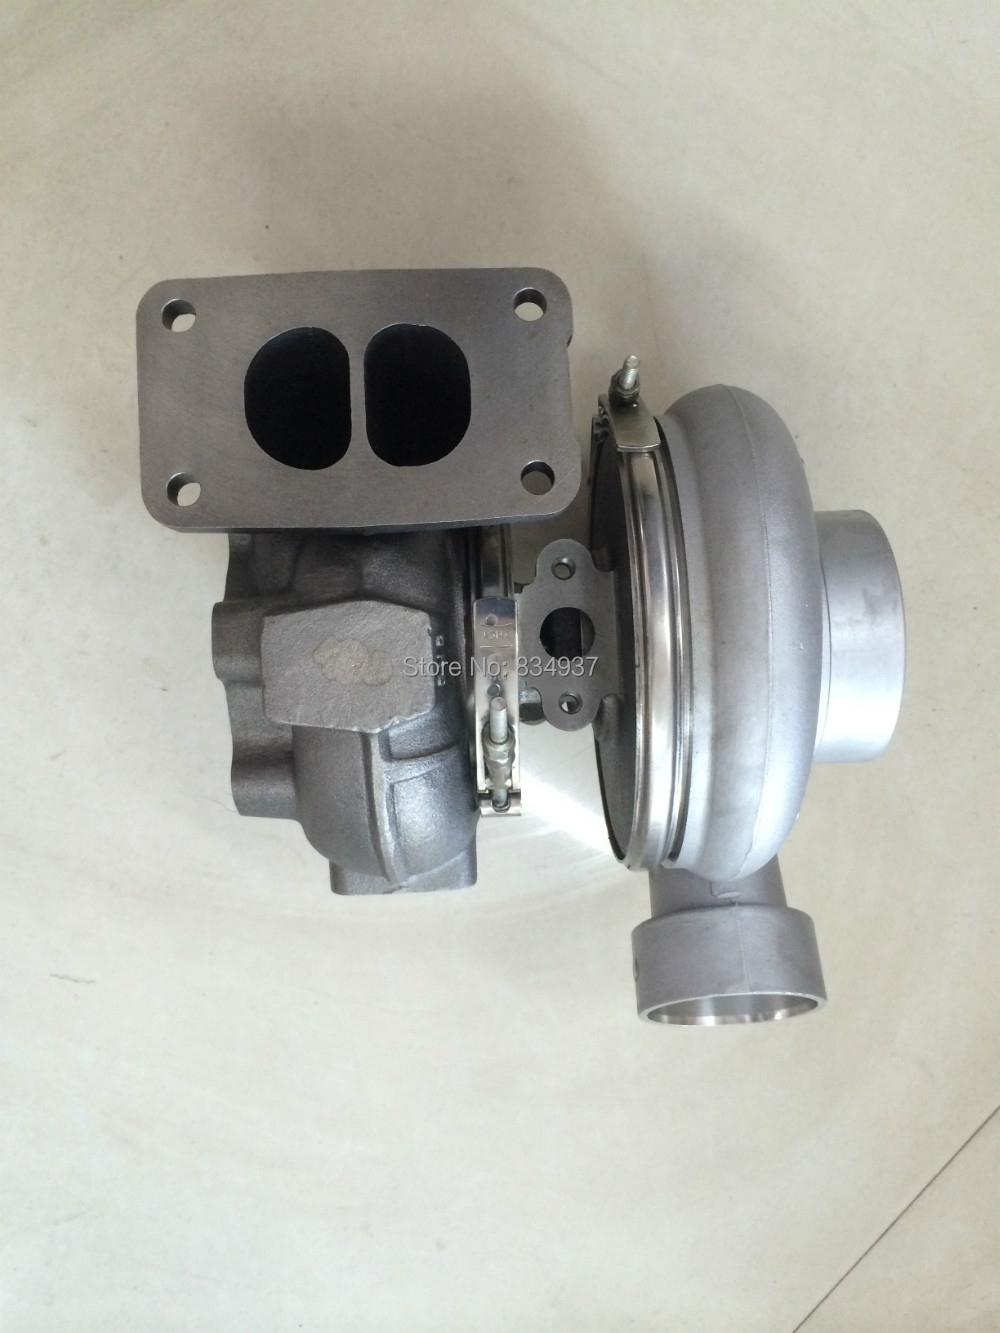 Turbo ACTROS TURBOCHARGERS mercedes actros turbo charger for truck S400 0070964699(China (Mainland))